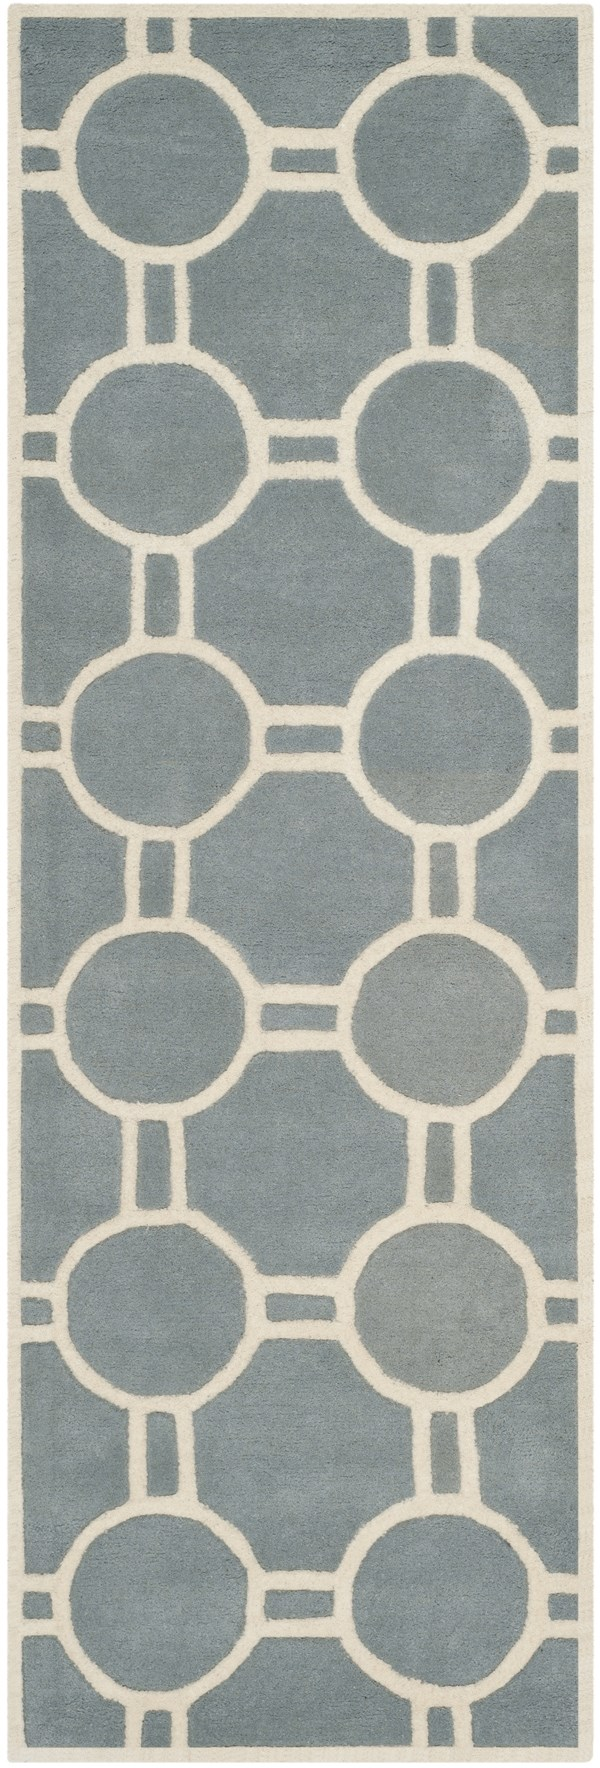 Blue, Ivory (B) Moroccan Area Rug